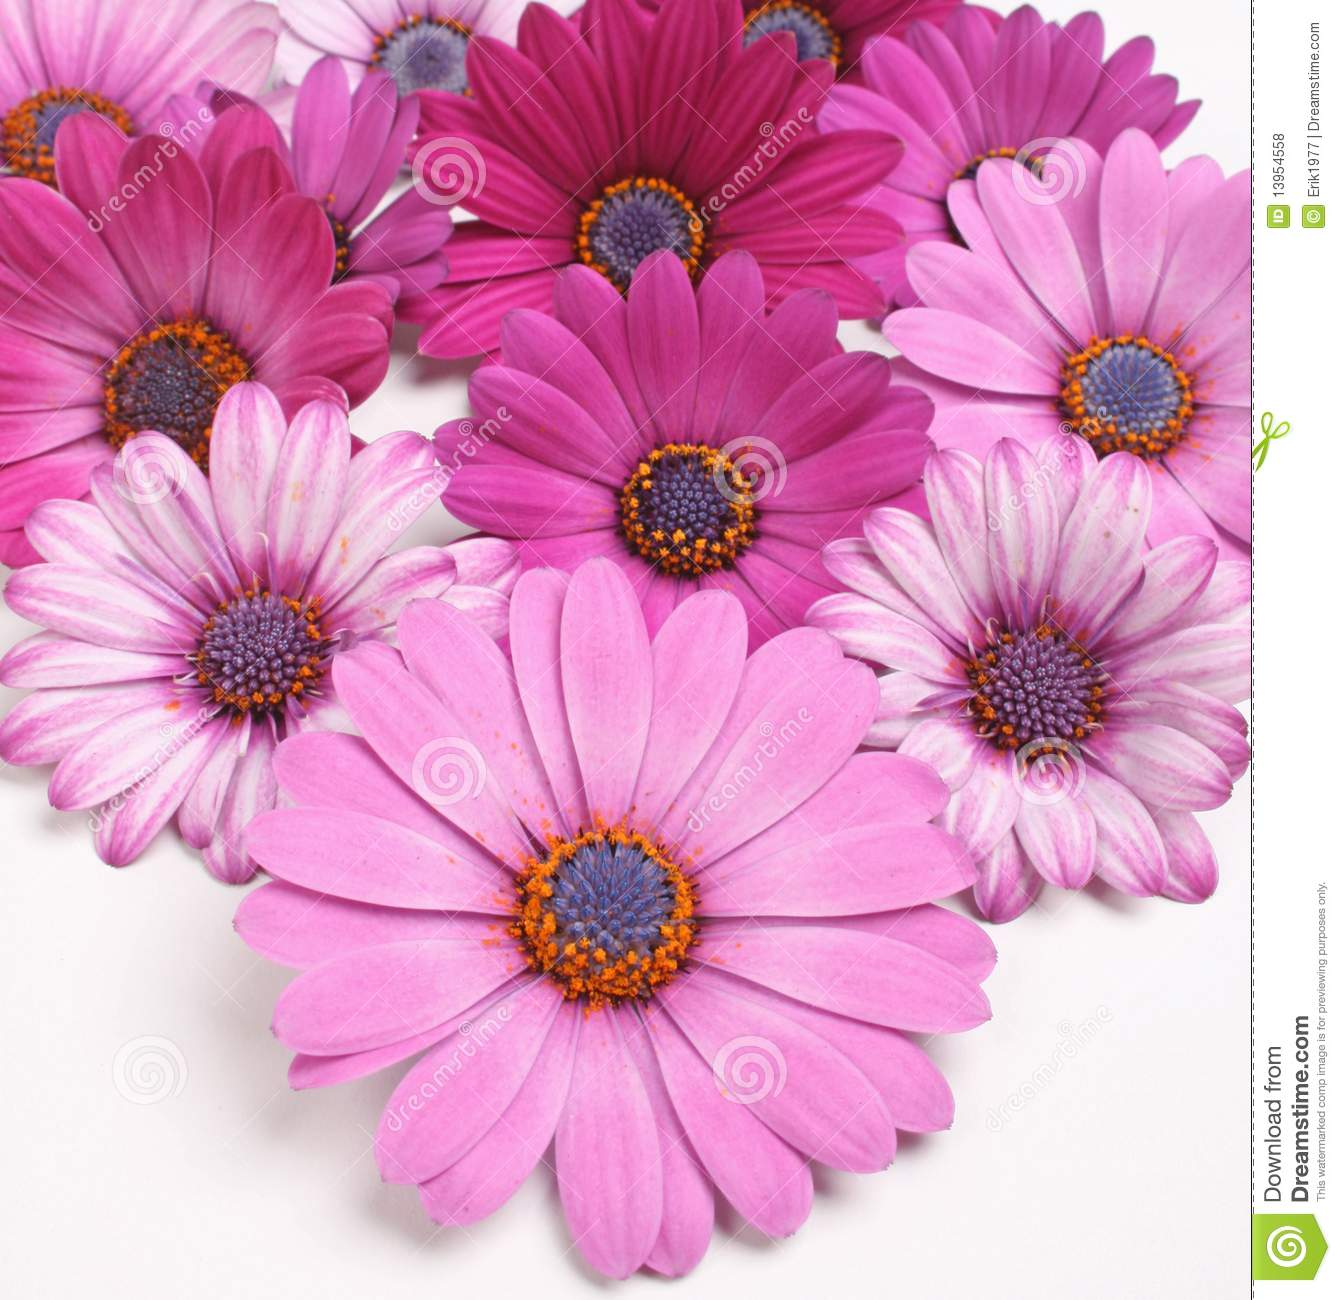 Daisy Flowers Stock Photo Image Of Bloom Flower Decoration 13954558